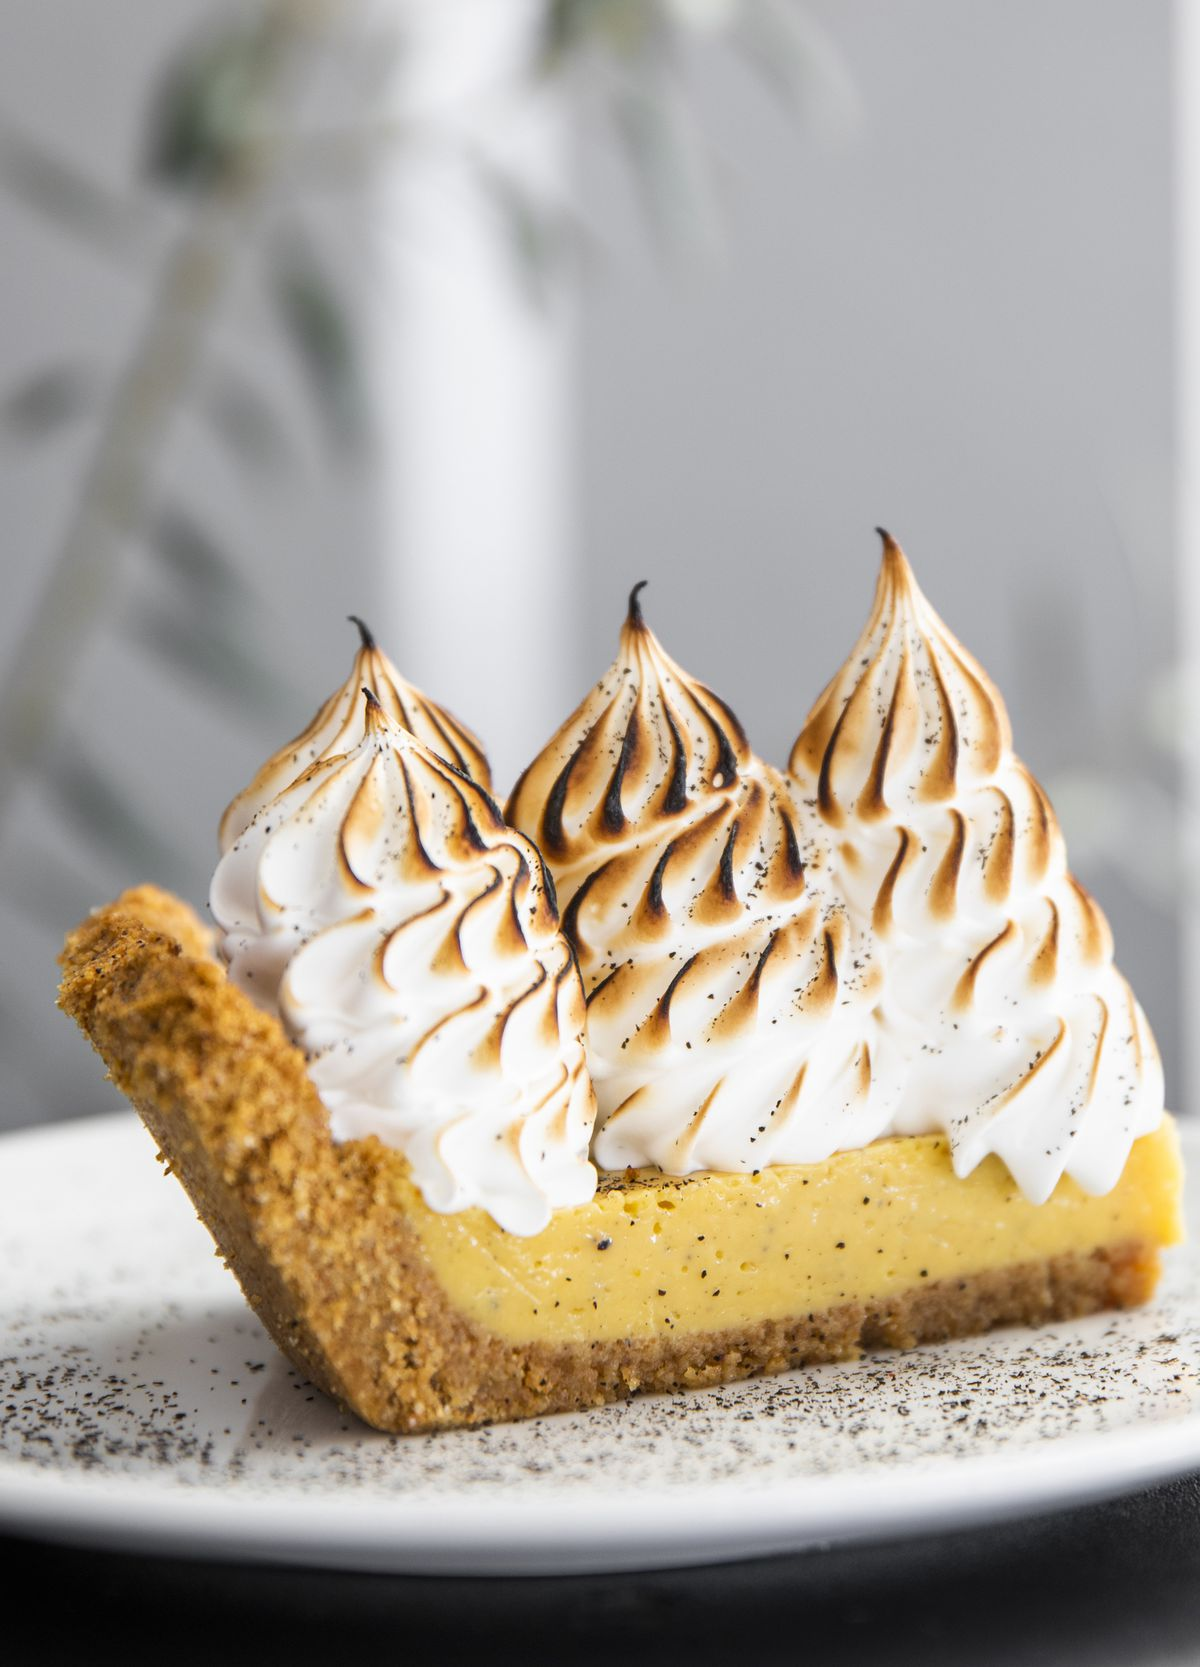 A slice of black lime pie on a white plate with three dollops of toasted meringue